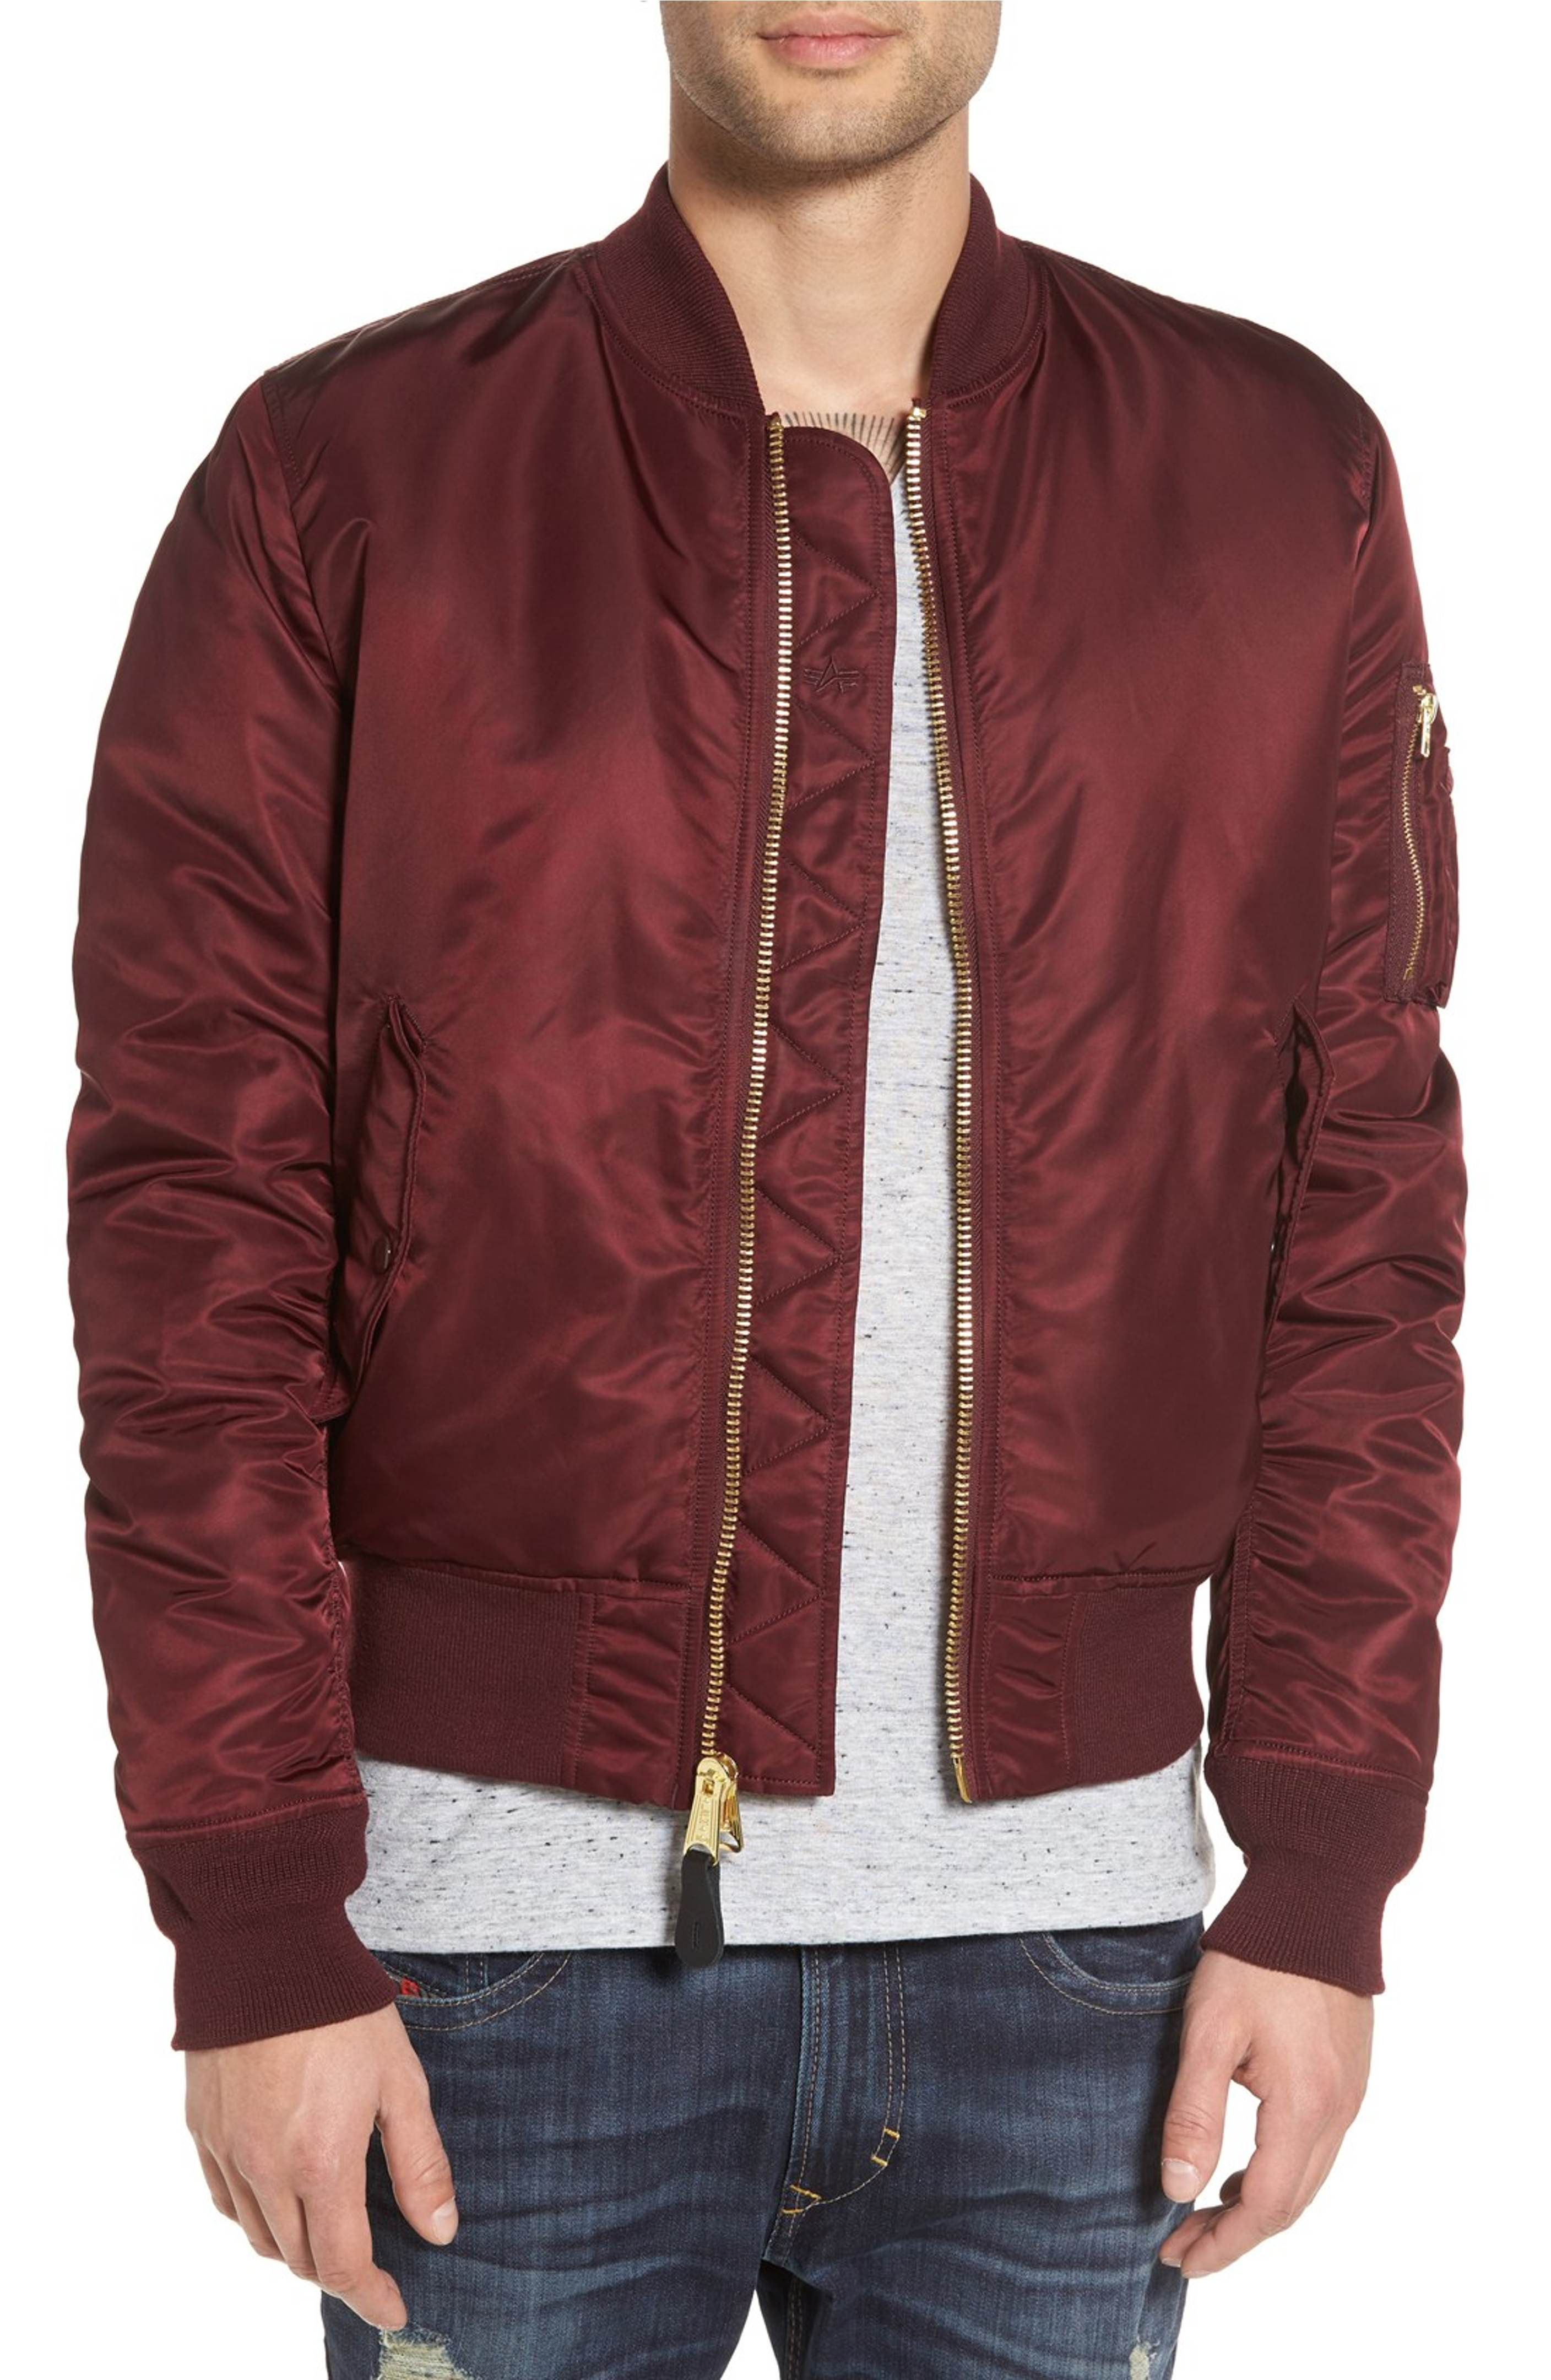 a555556f22 Main Image - Alpha Industries 'MA-1' Slim Fit Bomber Jacket | Man ...